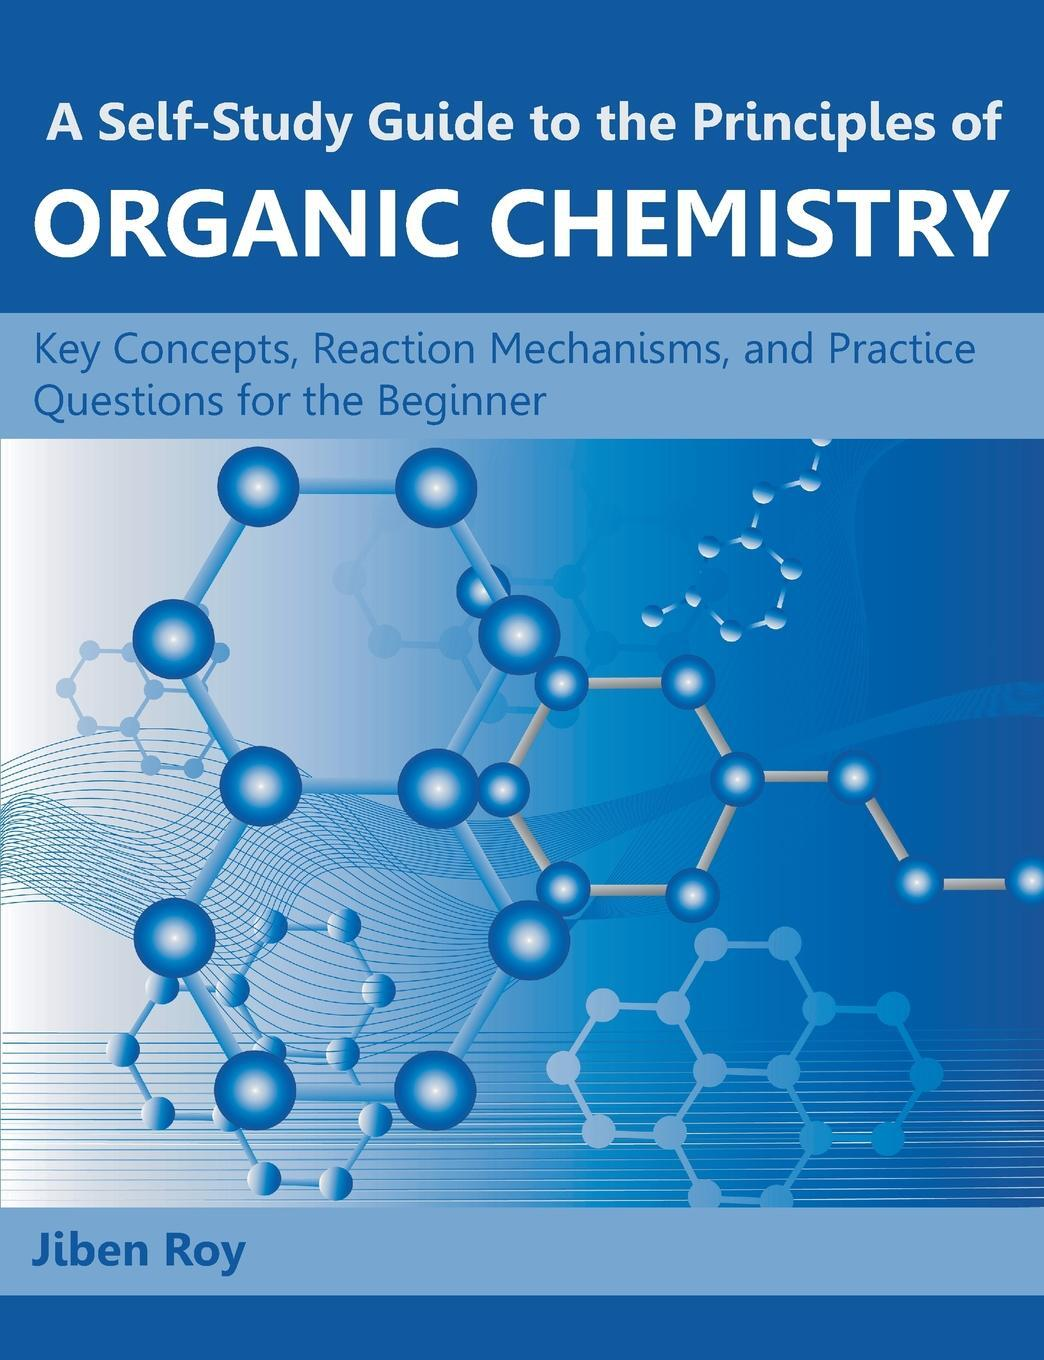 A Self-Study Guide to the Principles of Organic Chemistry. Key Concepts, Reaction Mechanisms, and Practice Questions for the Beginner